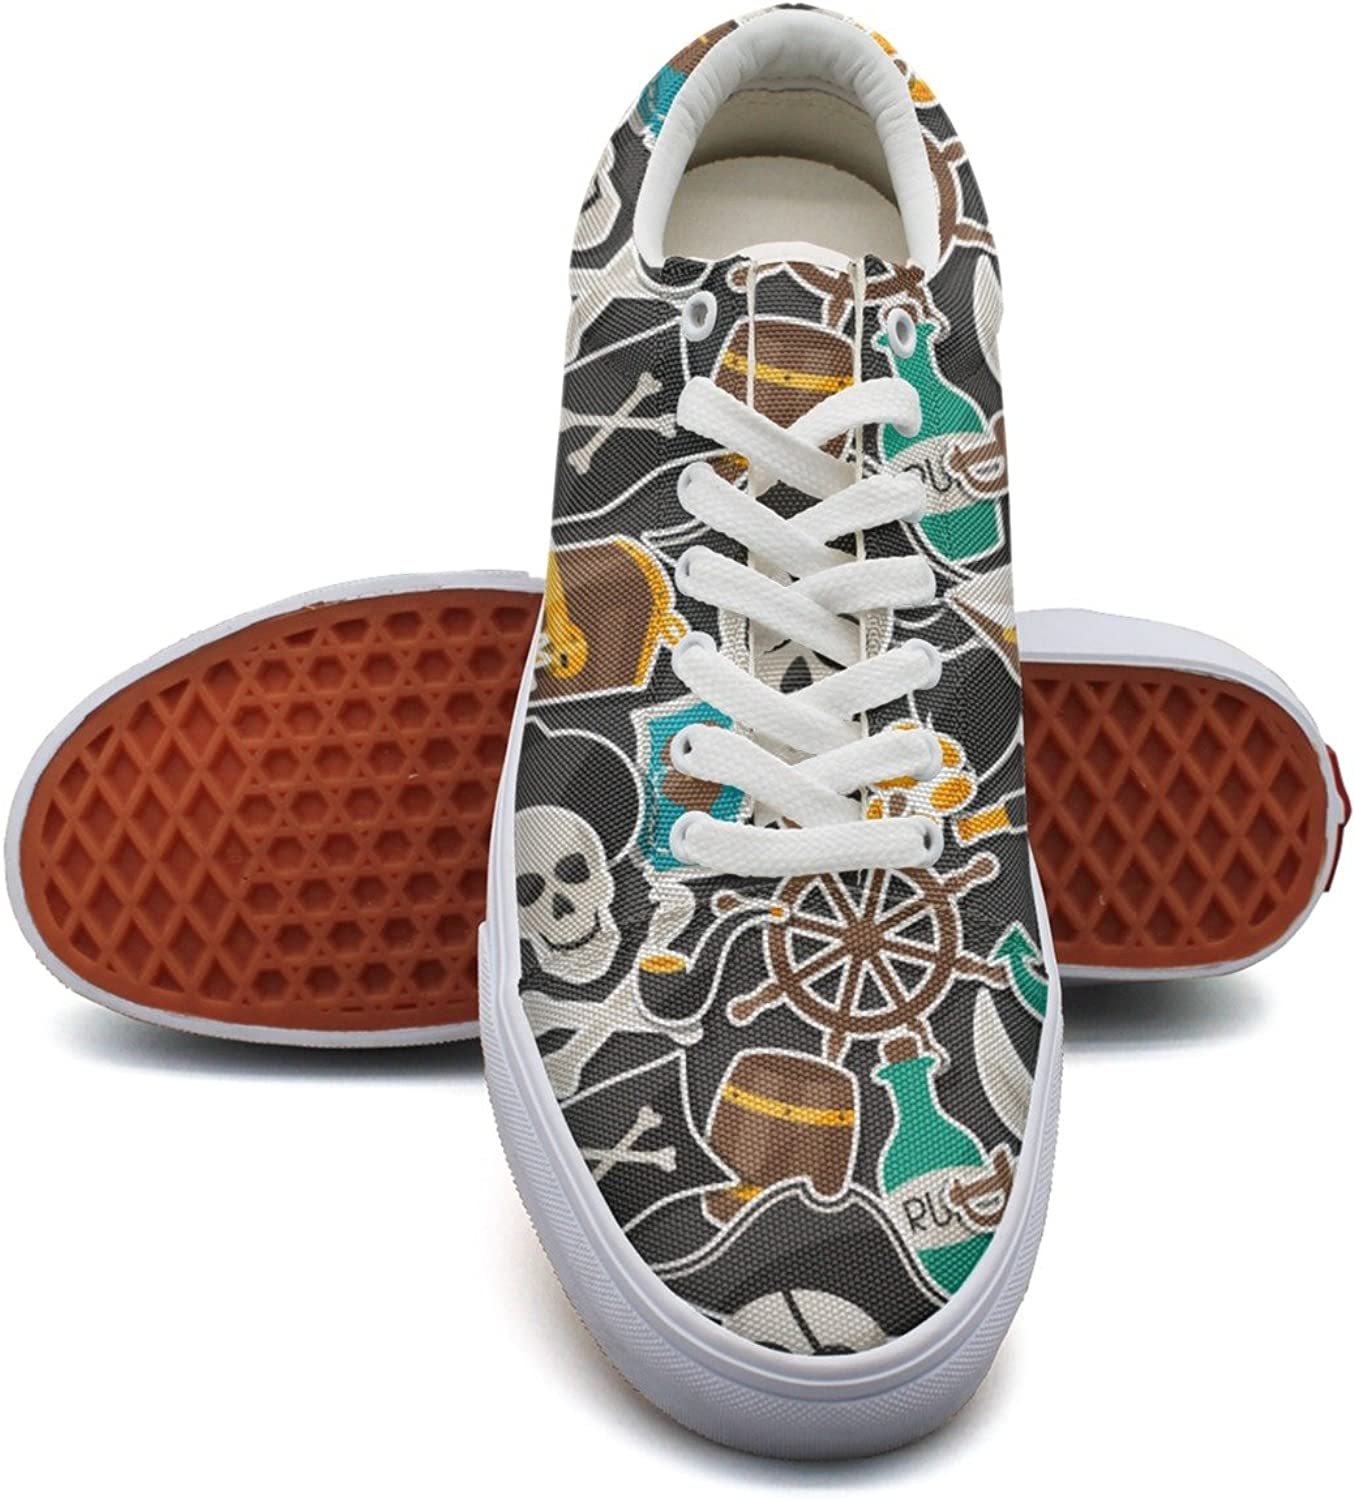 Feenfling Pirate Theme Skull Anchor Womens Navy Canvas Tennis shoes Low Top Lightweight Basketball shoes for Women's